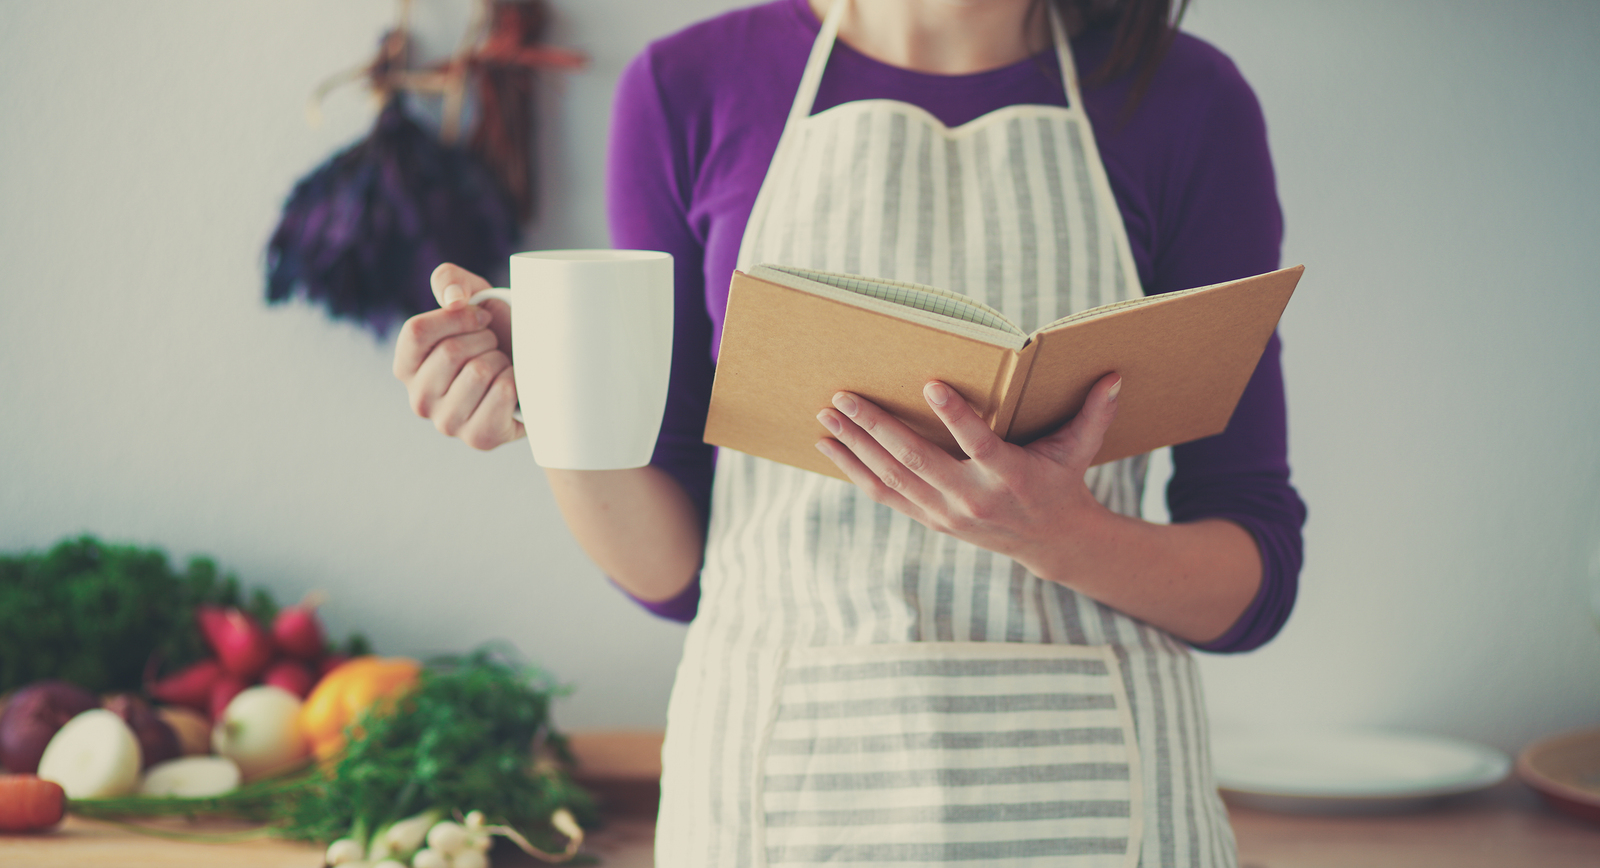 How to Free Others From Past Mistakes: What My Cookbook Taught Me